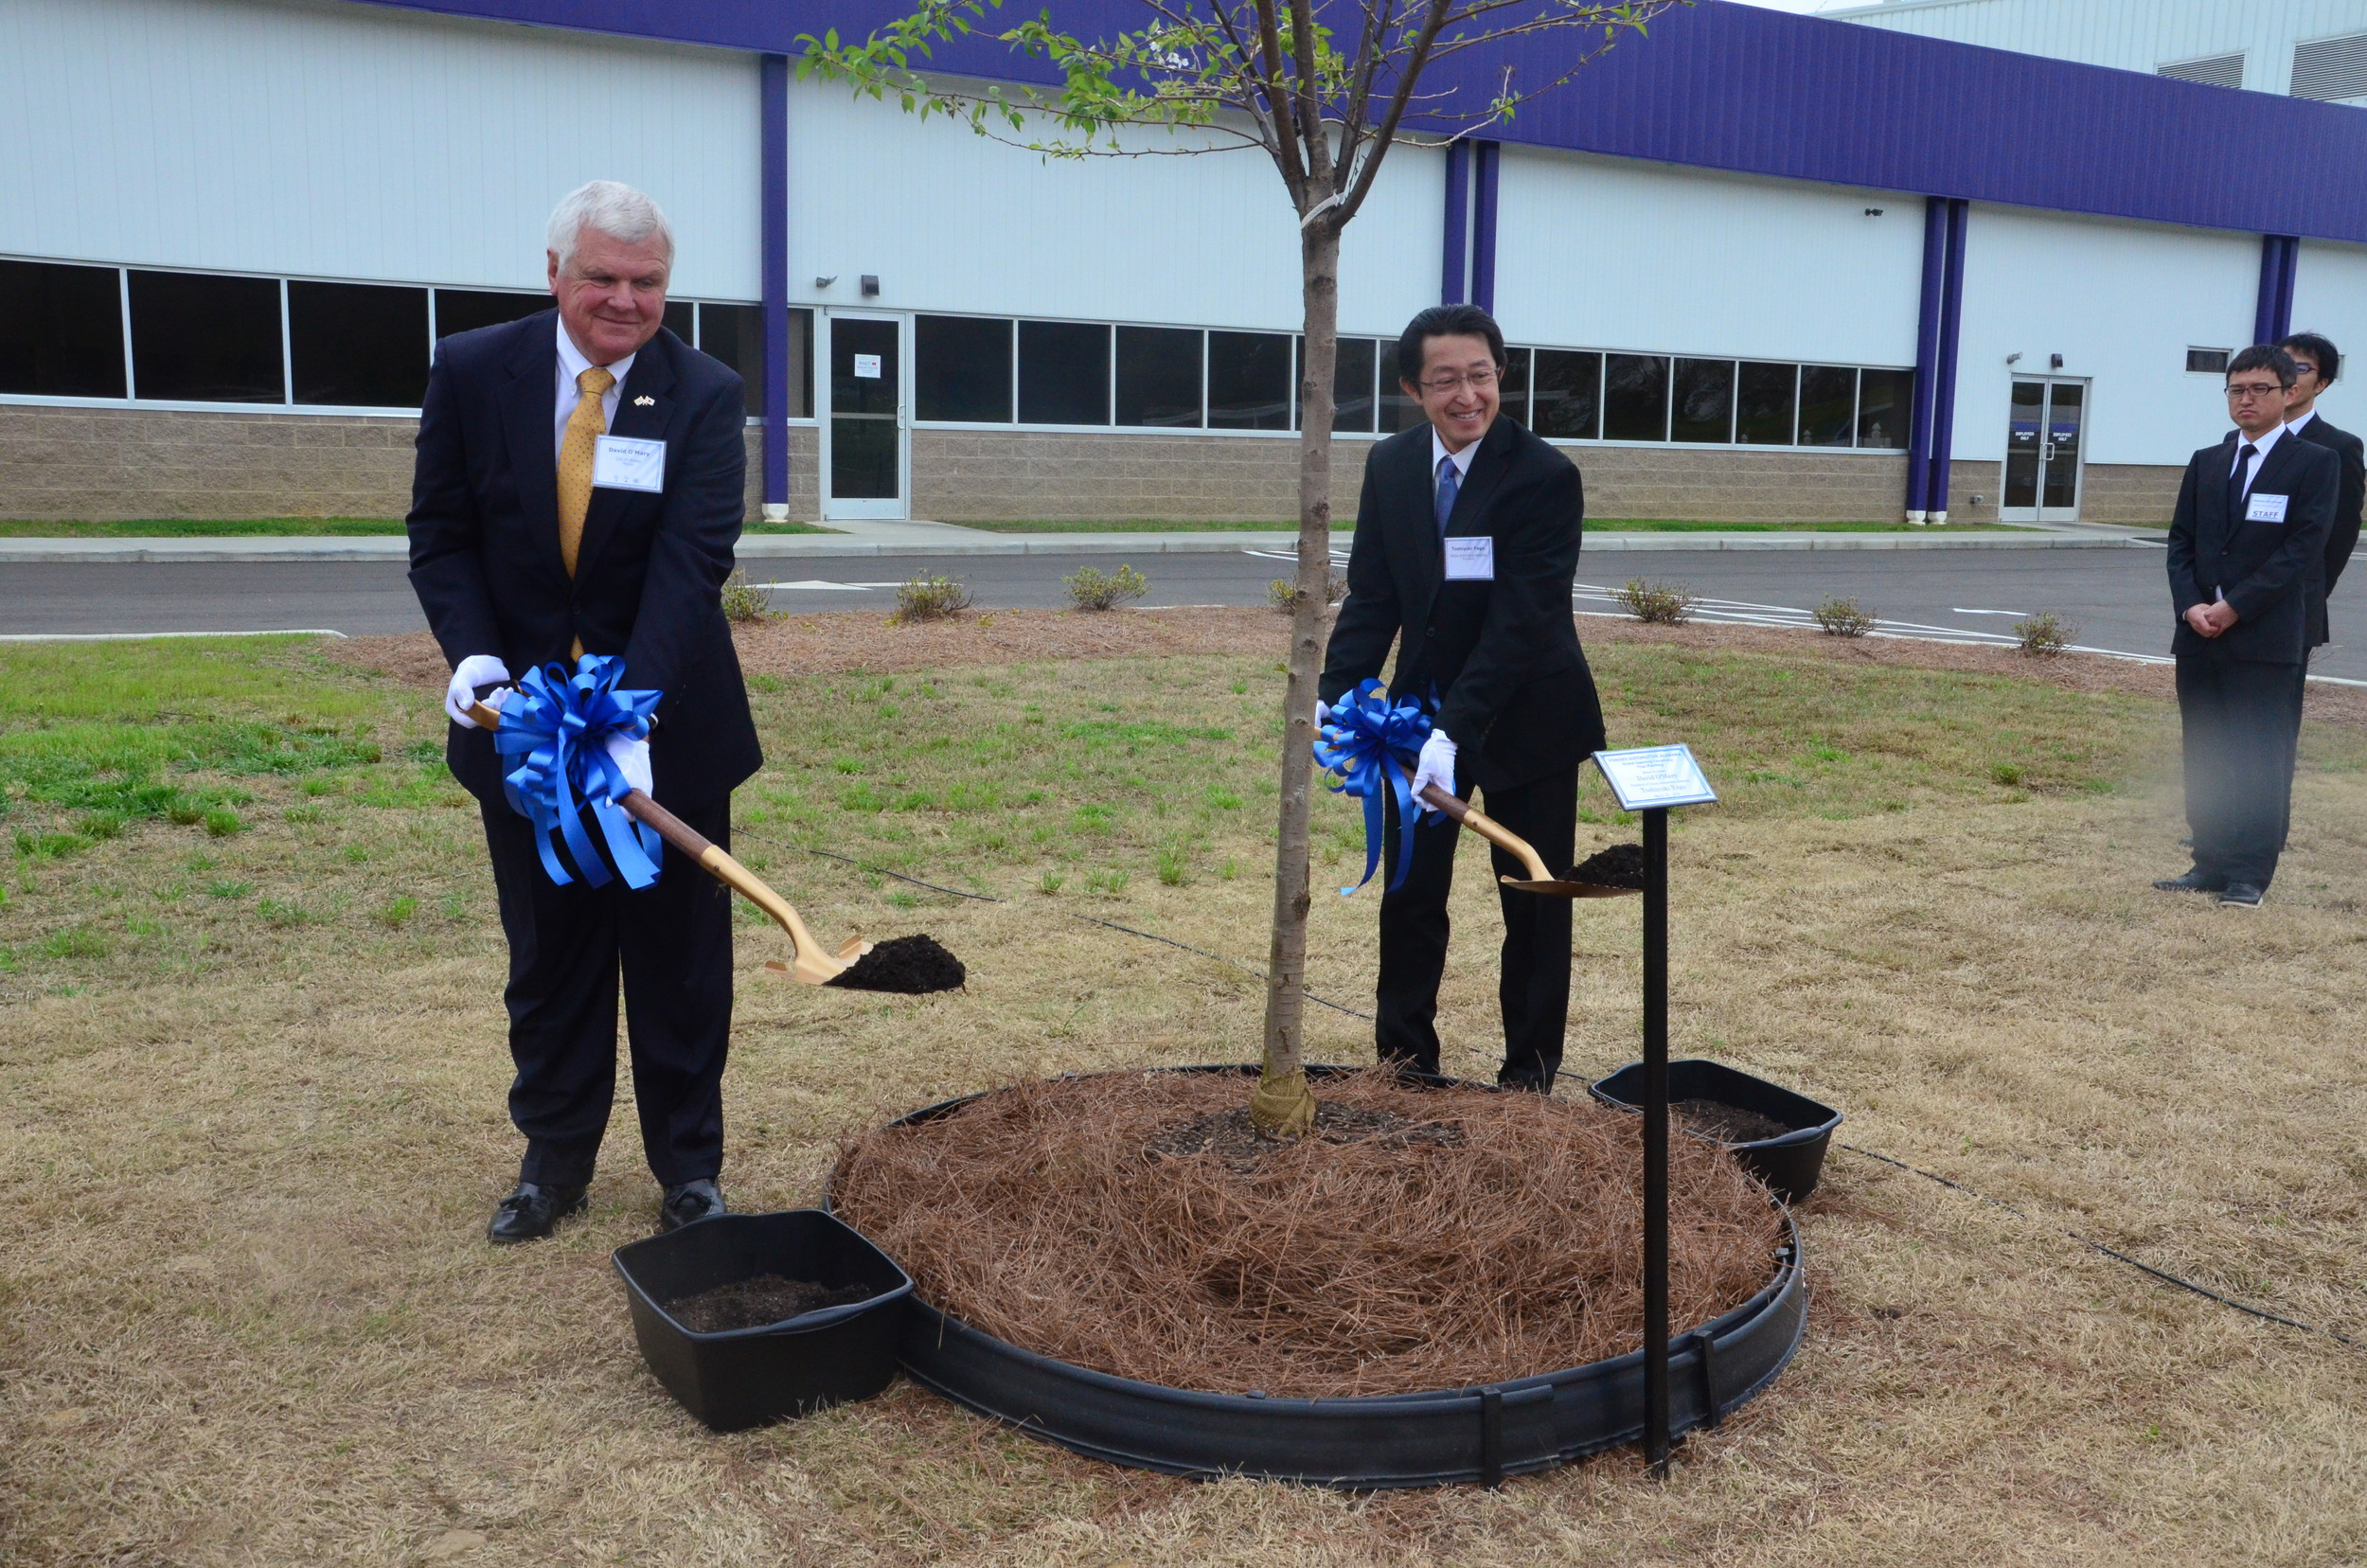 Jasper Mayor David O'Mary and Toshiyuki Yago, president of Yorozu Automotive Alabama, participate in a tree planting ceremony Tuesday at the Yorozu location in Jasper.